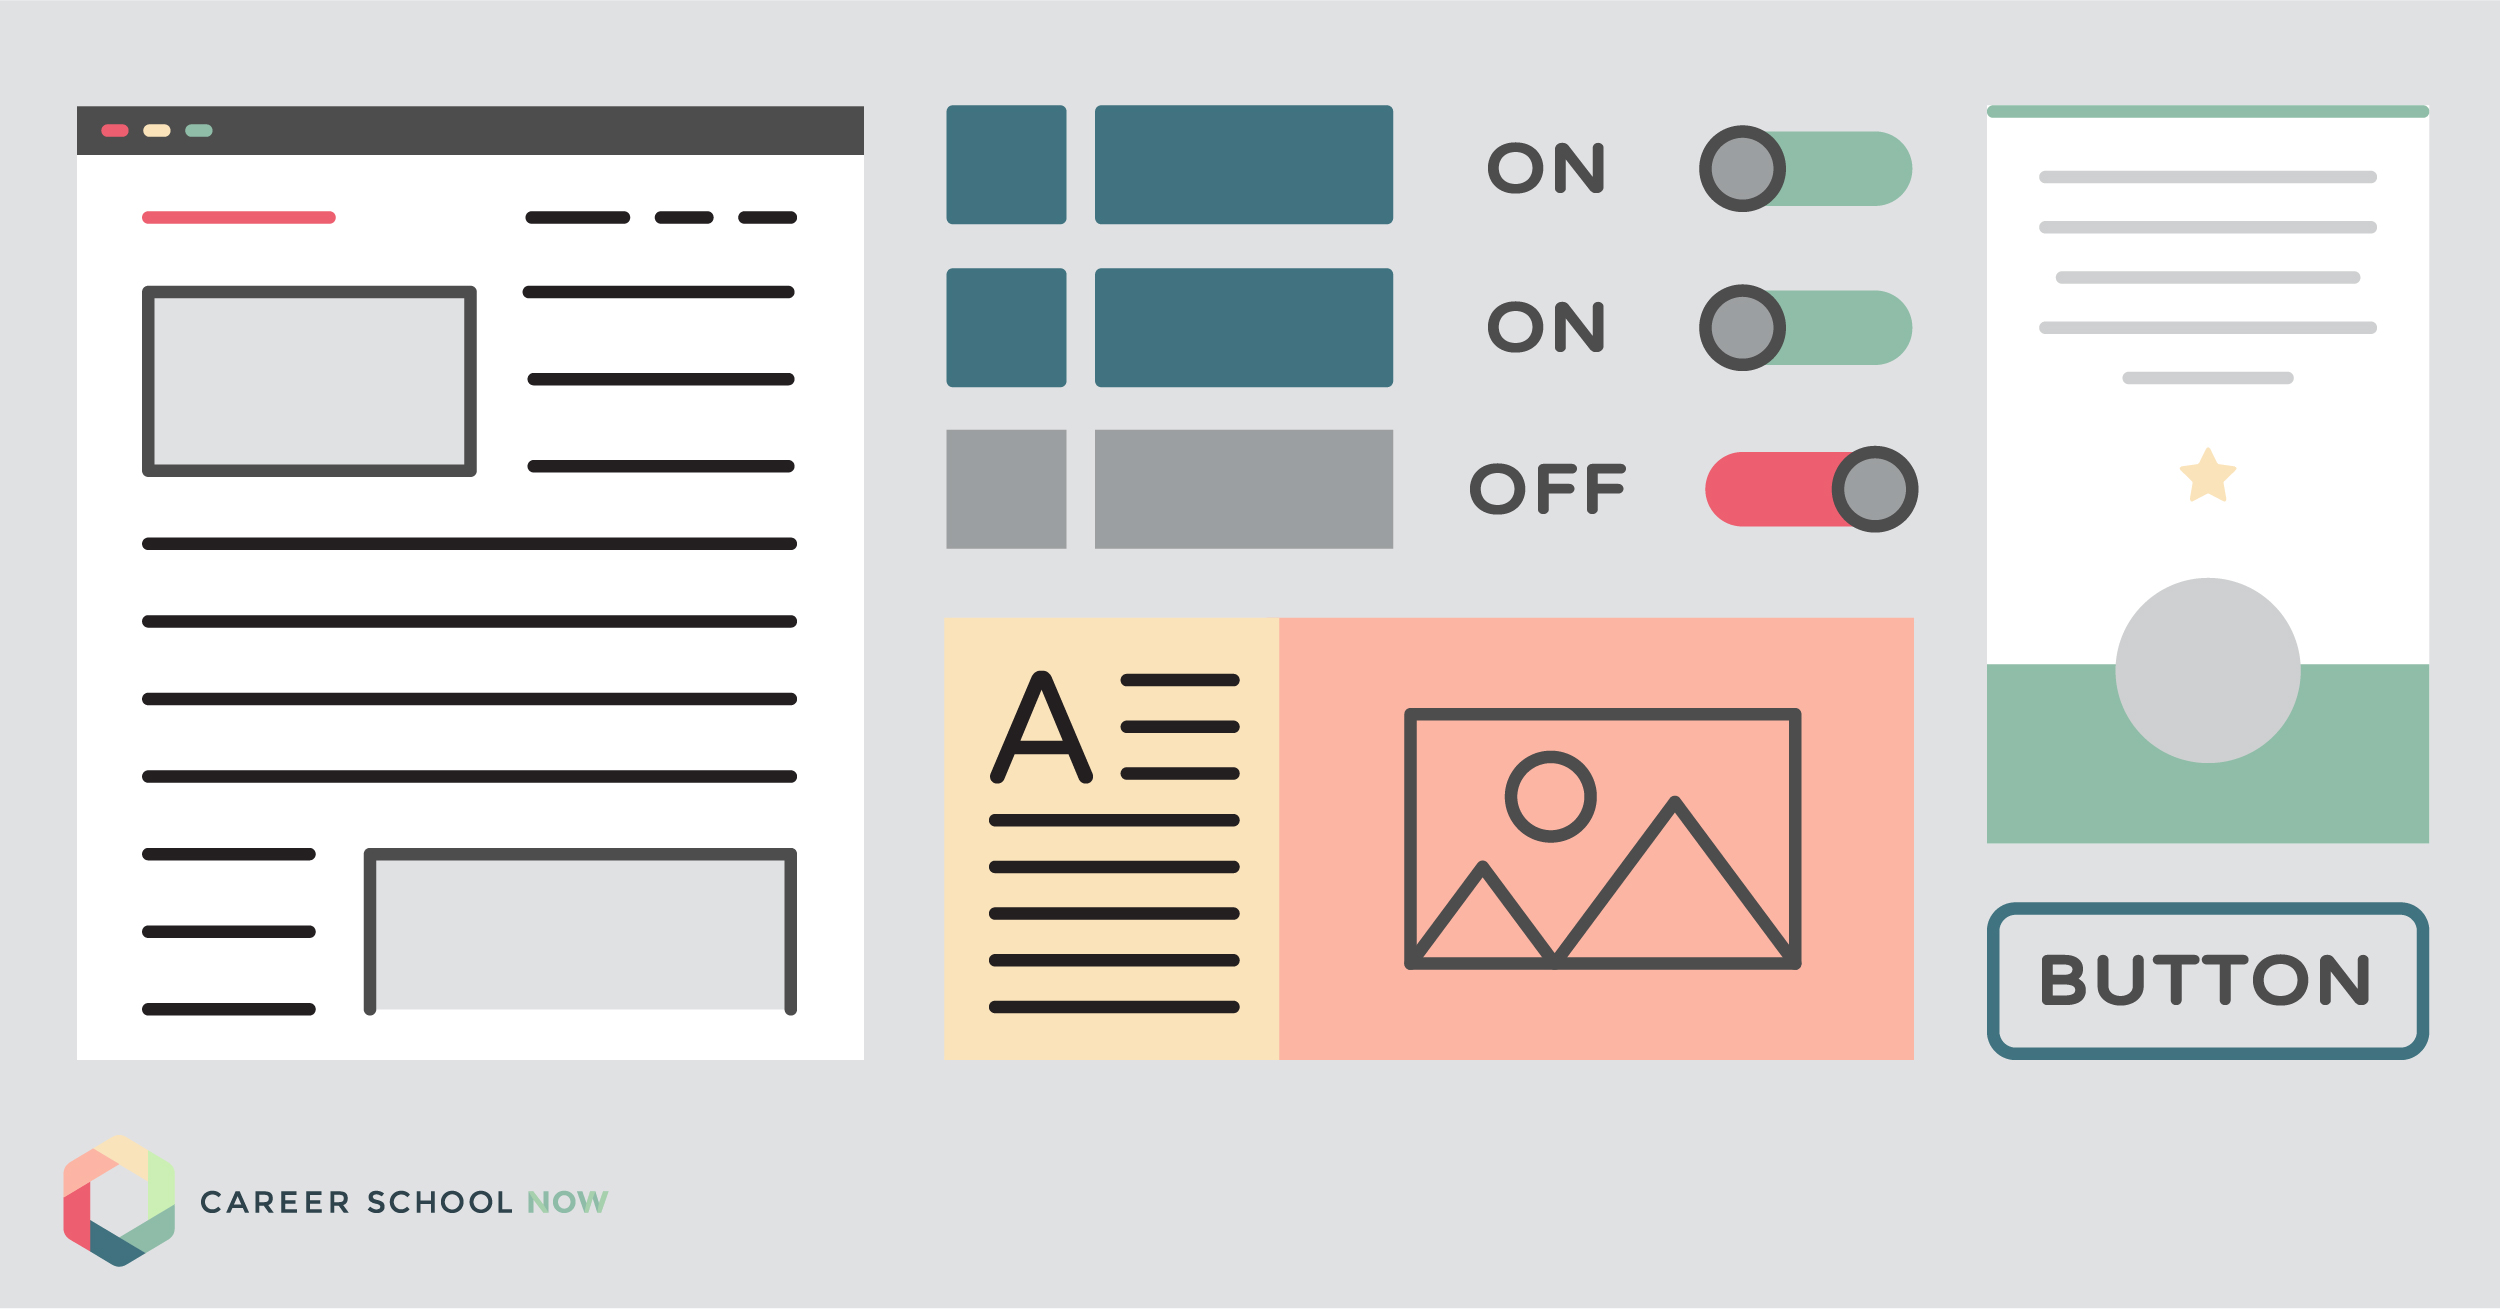 All you need to know about a career in web design